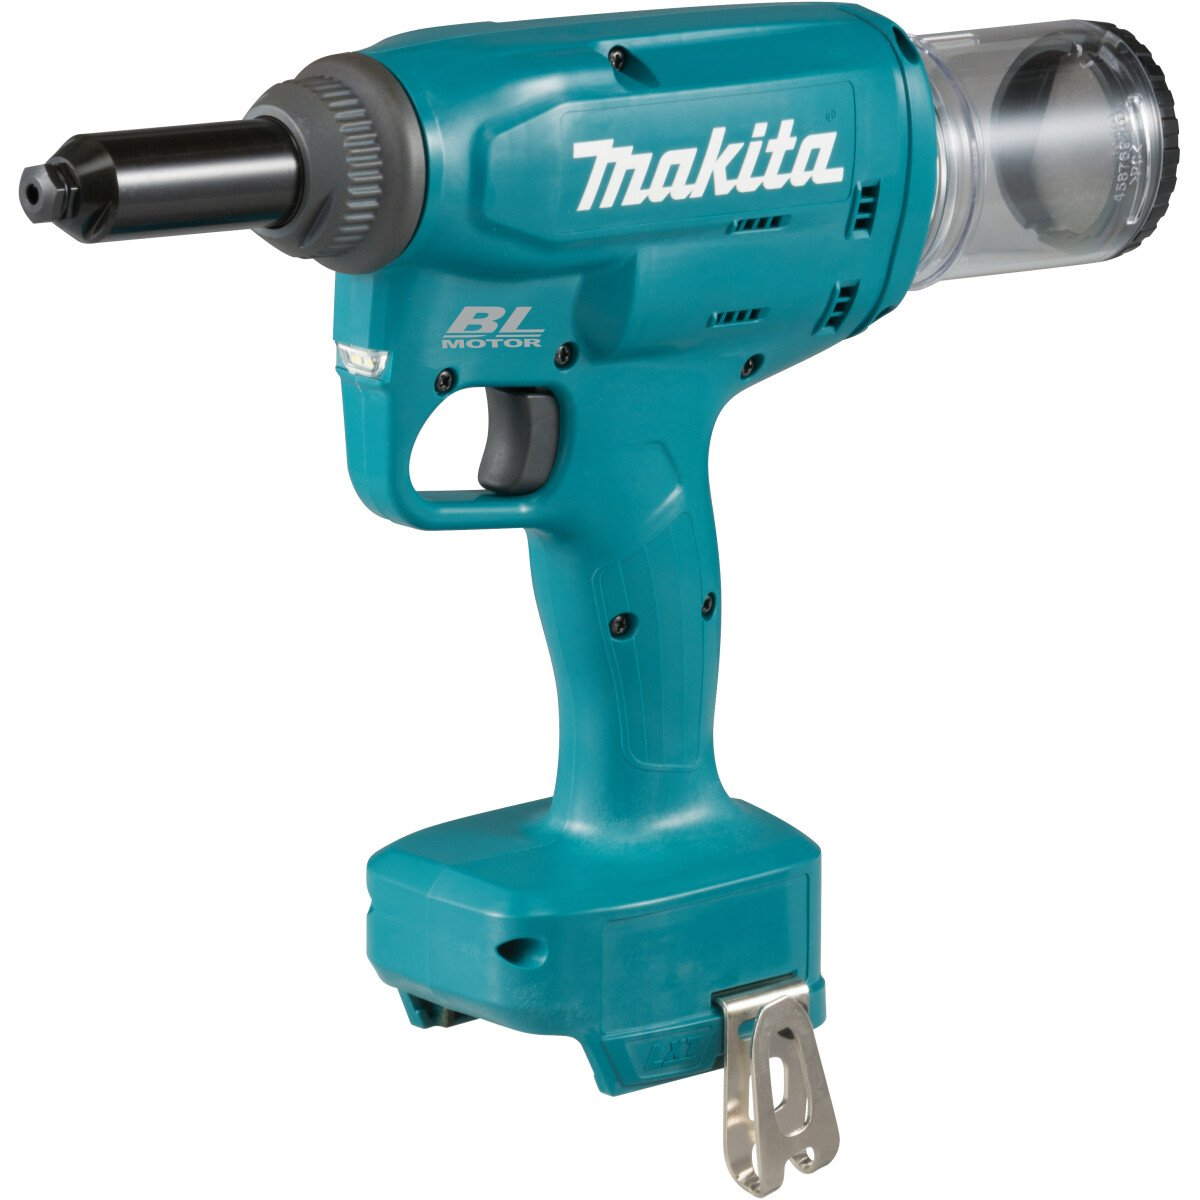 Makita DRV150Z 18v Body Only Rivet Gun with 2.4-.4.8mm Nose Pieces